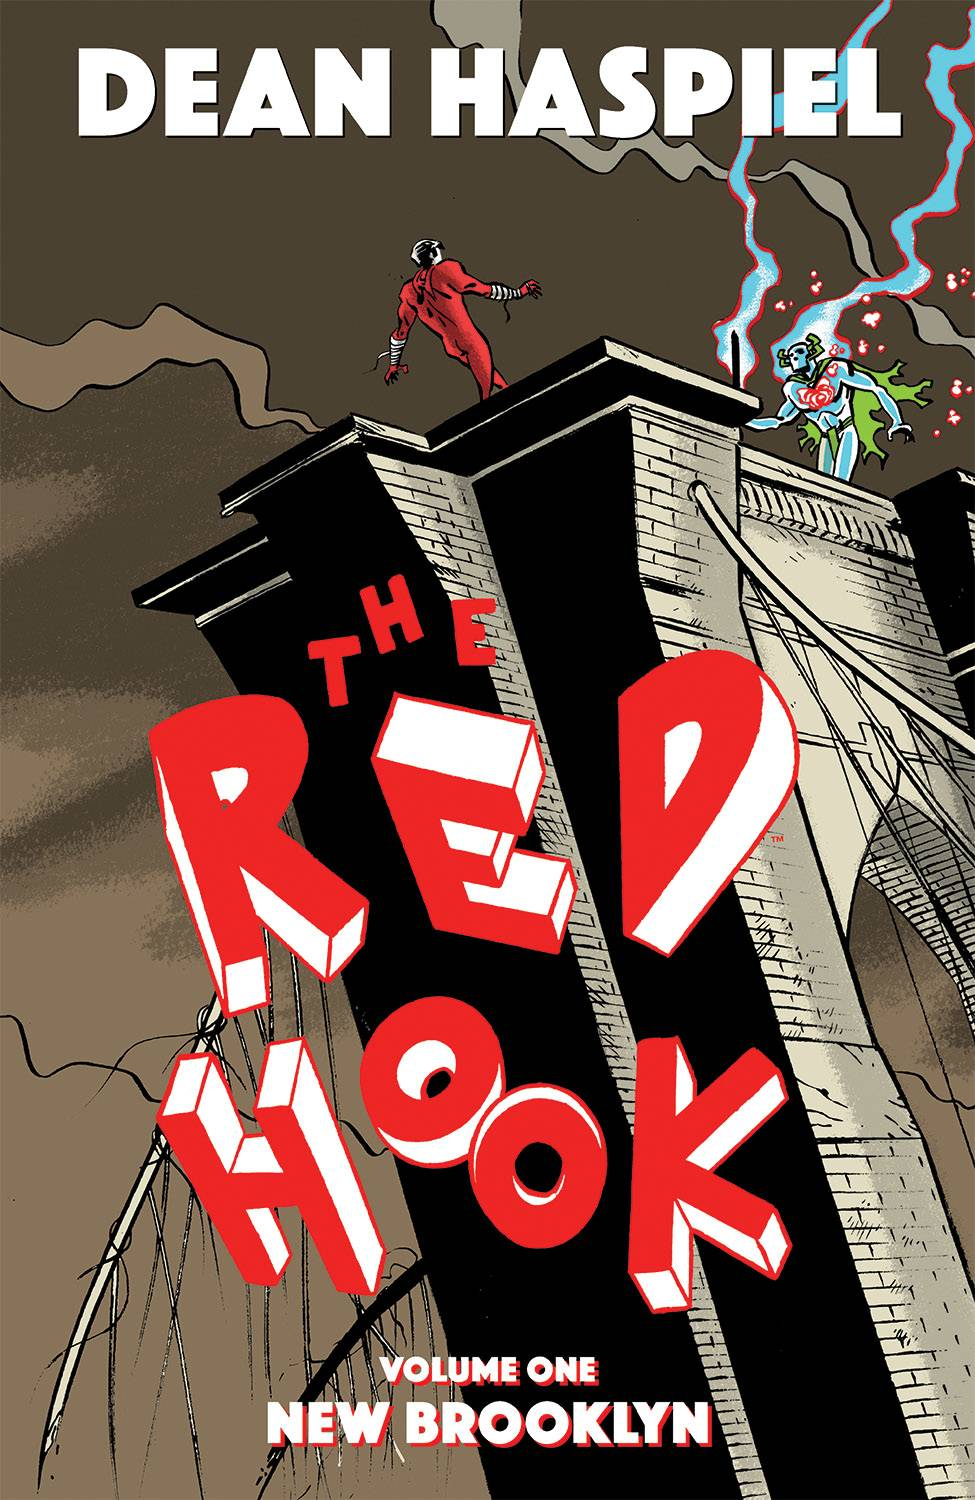 RED HOOK TP VOL 01 NEW BROOKLYN (APR180549) (MR)